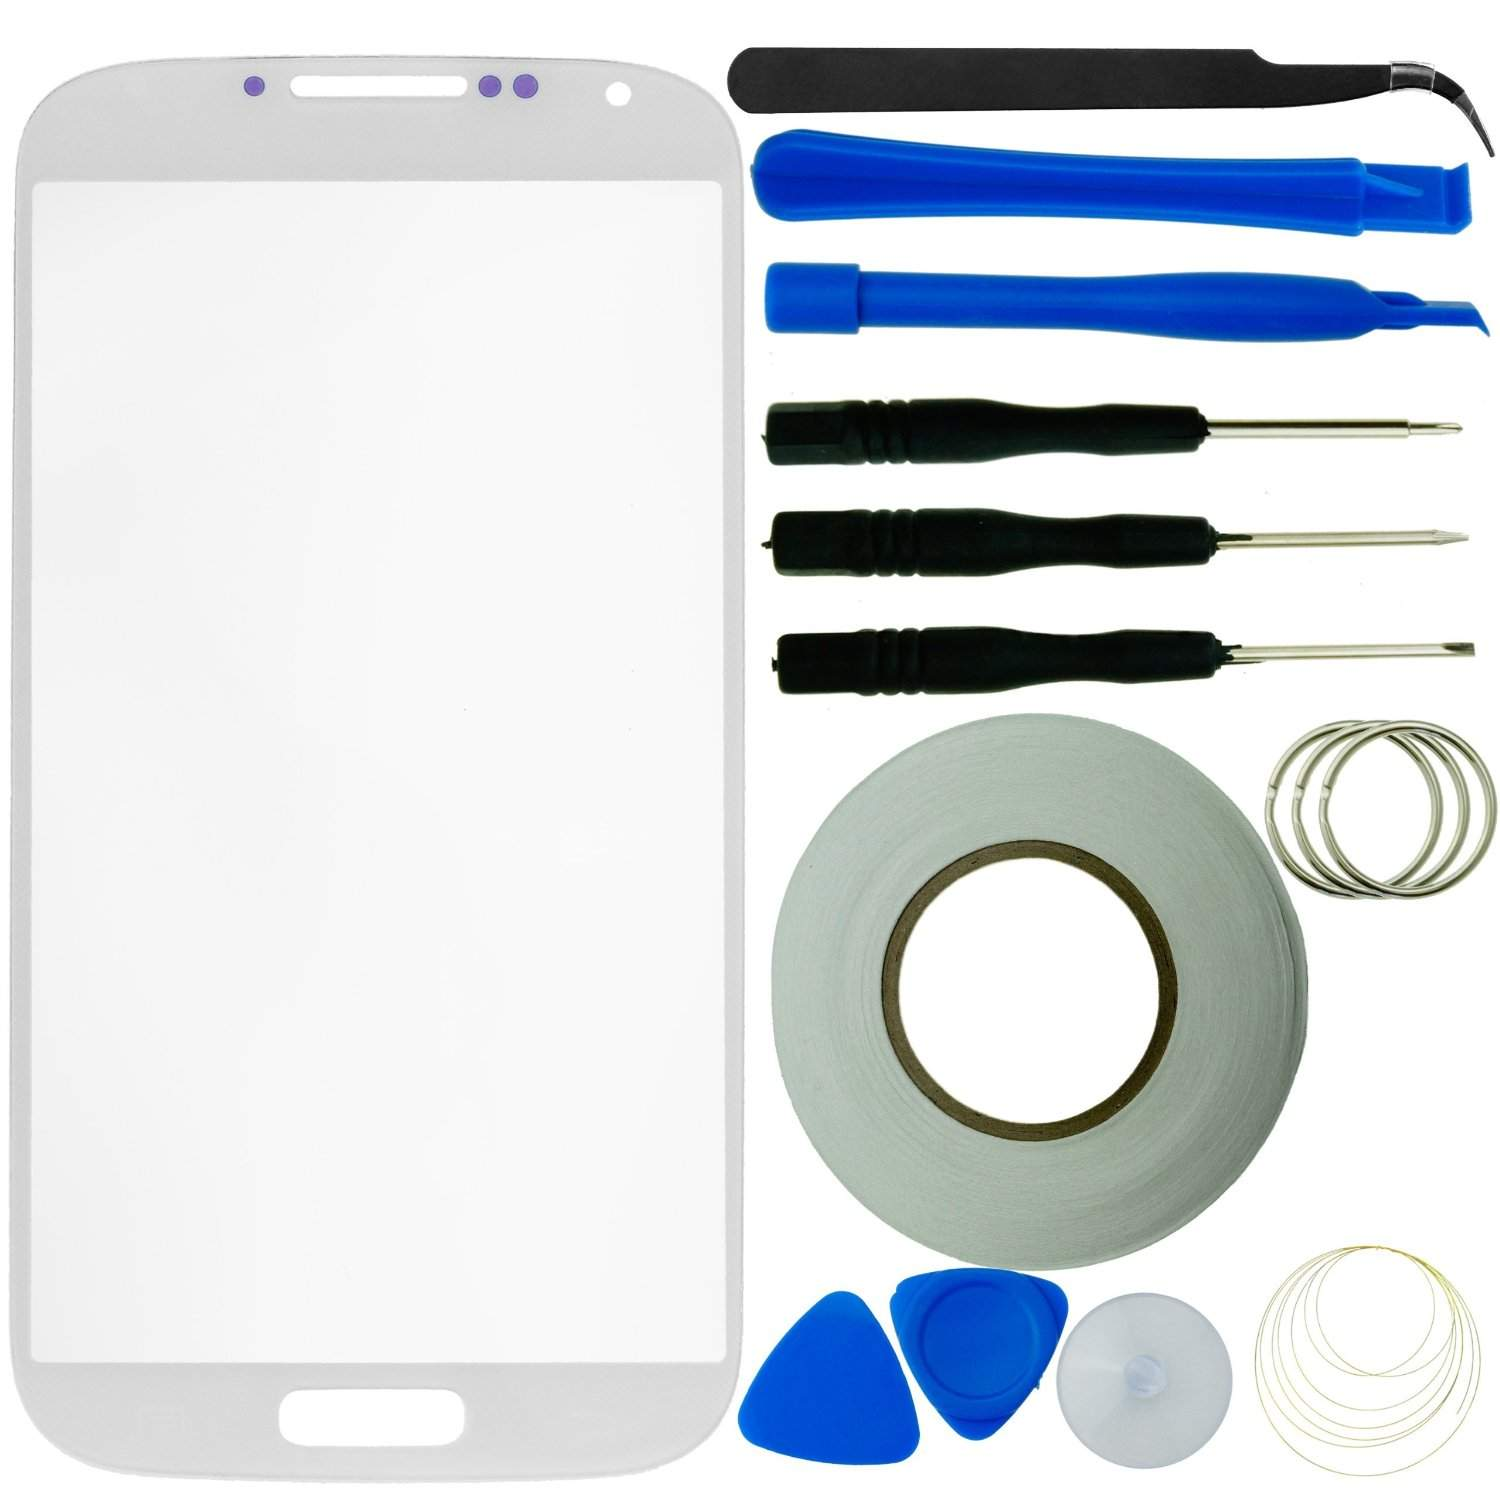 Samsung Galaxy S4 Screen Replacement Kit Including 1 Replacement Screen Glass (White)